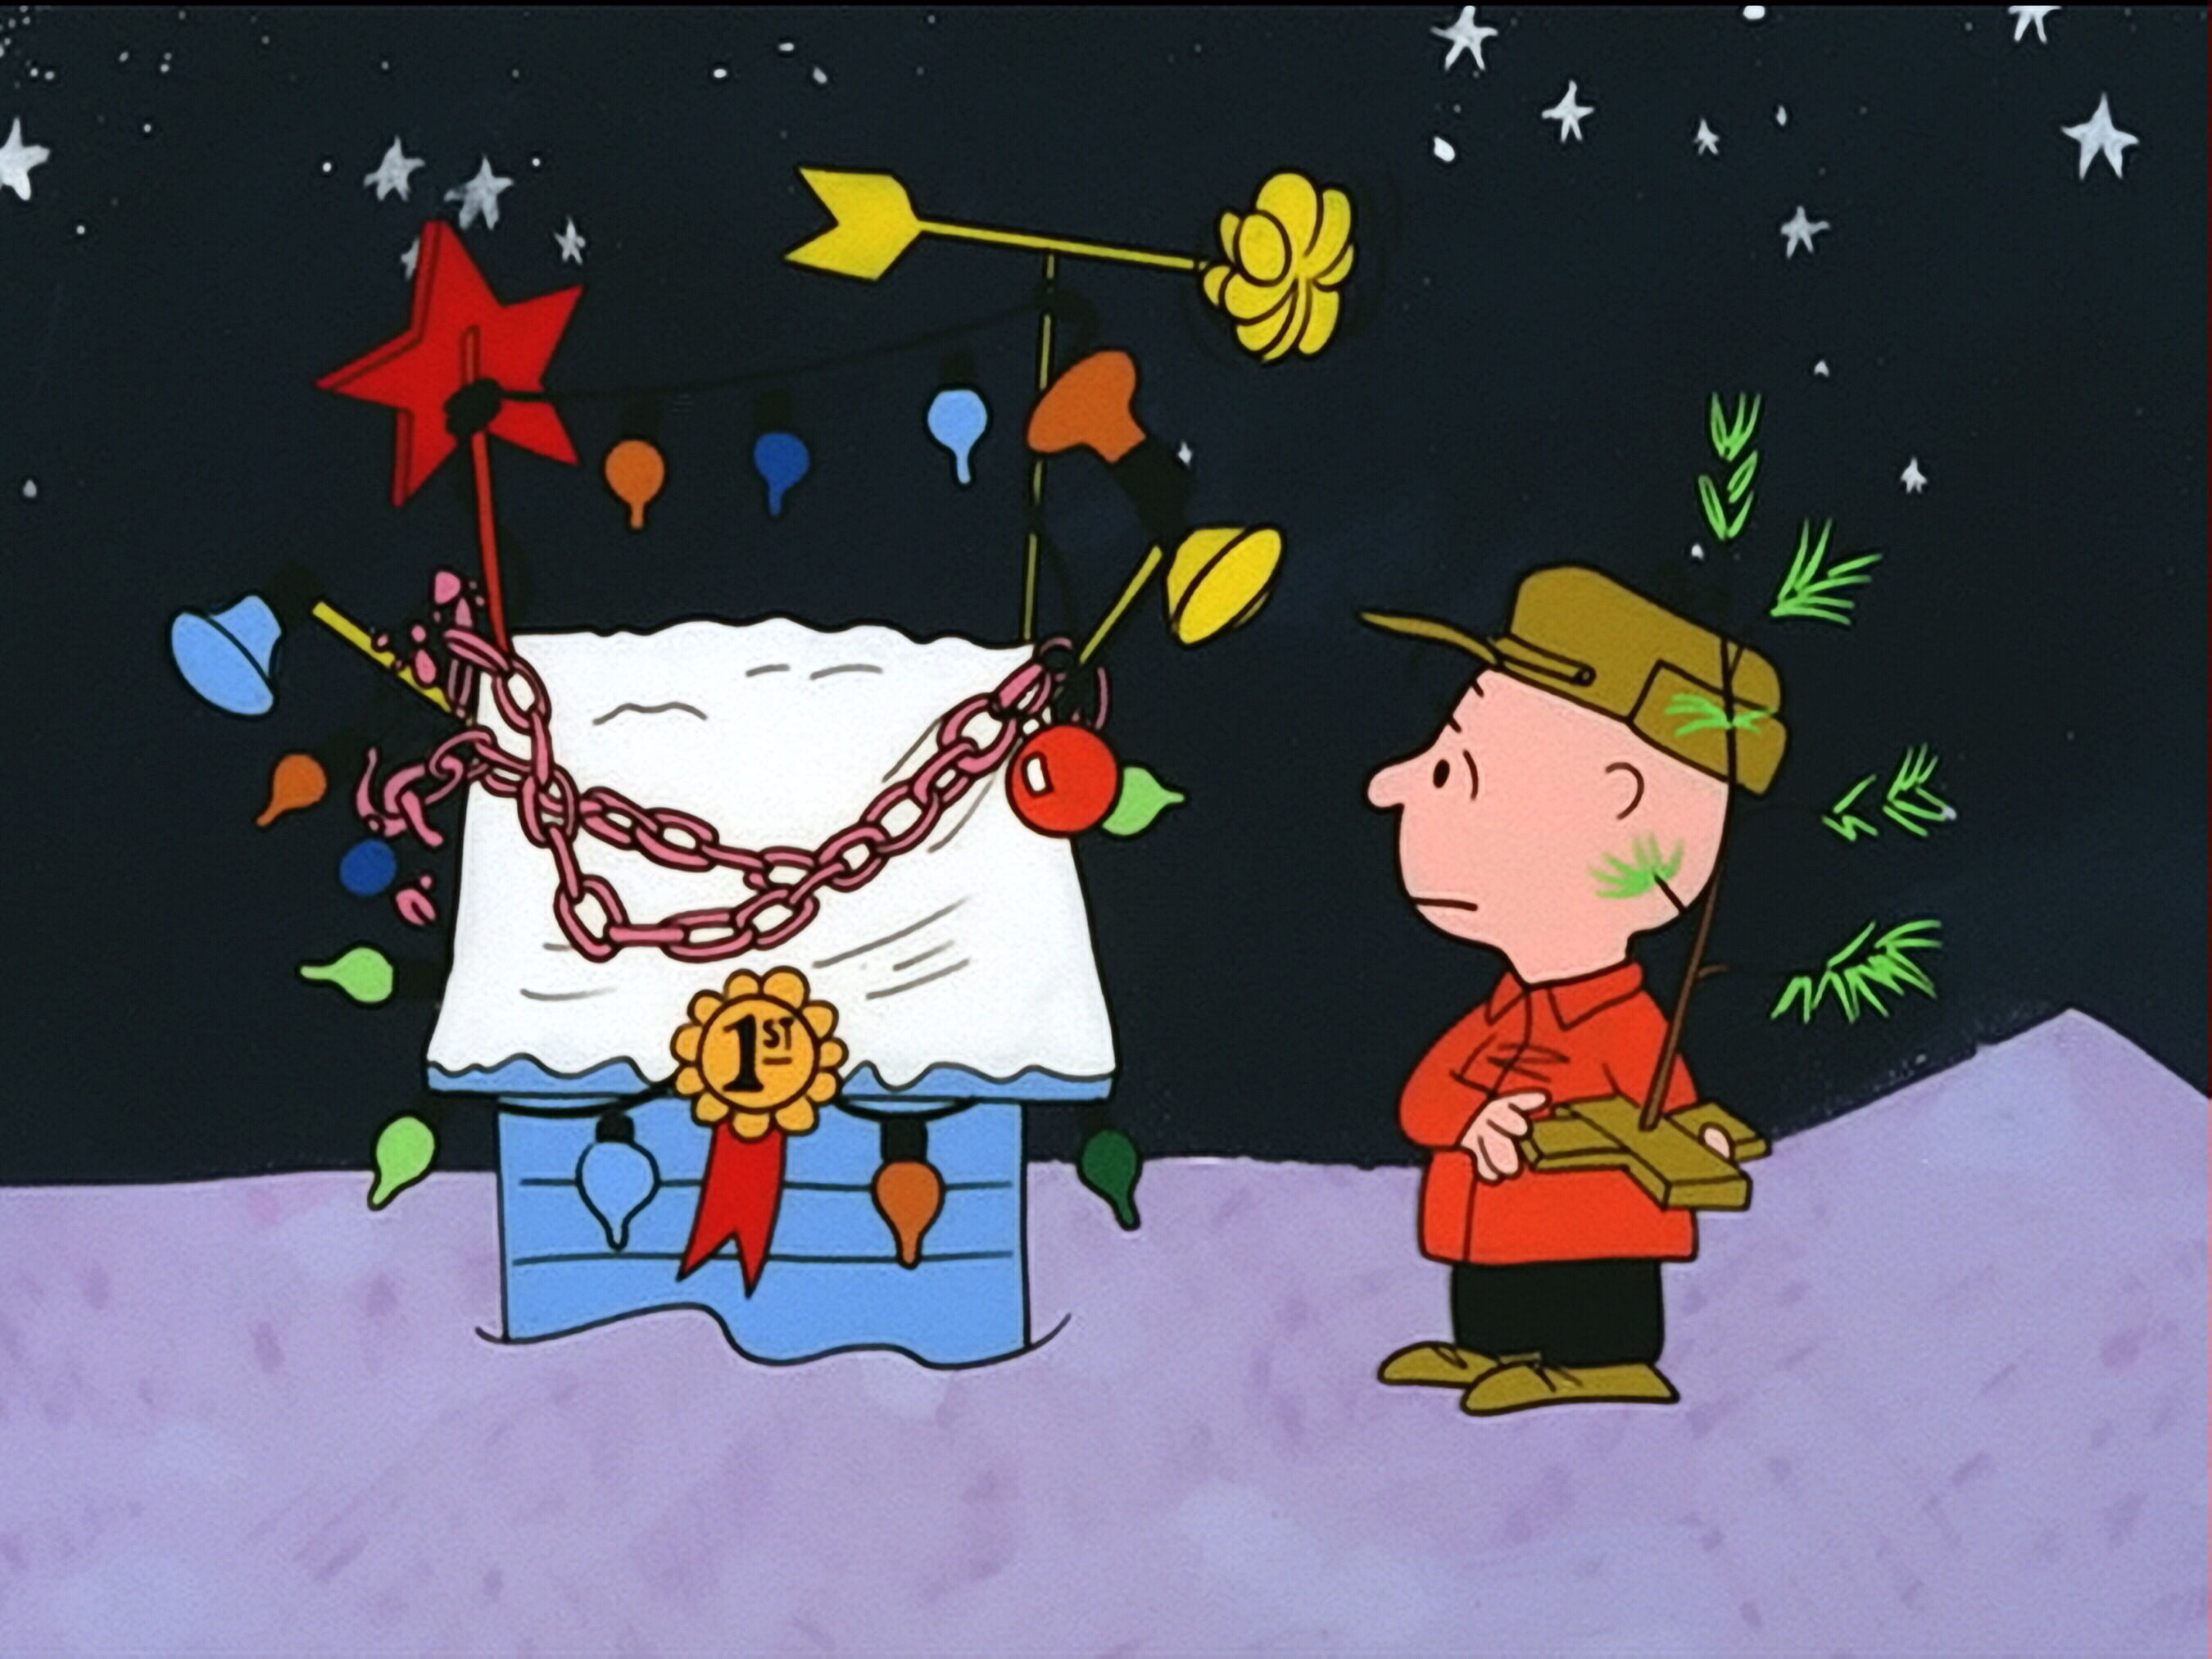 snoopy wins first place christmas cartoon wallpaper : christmas cartoons